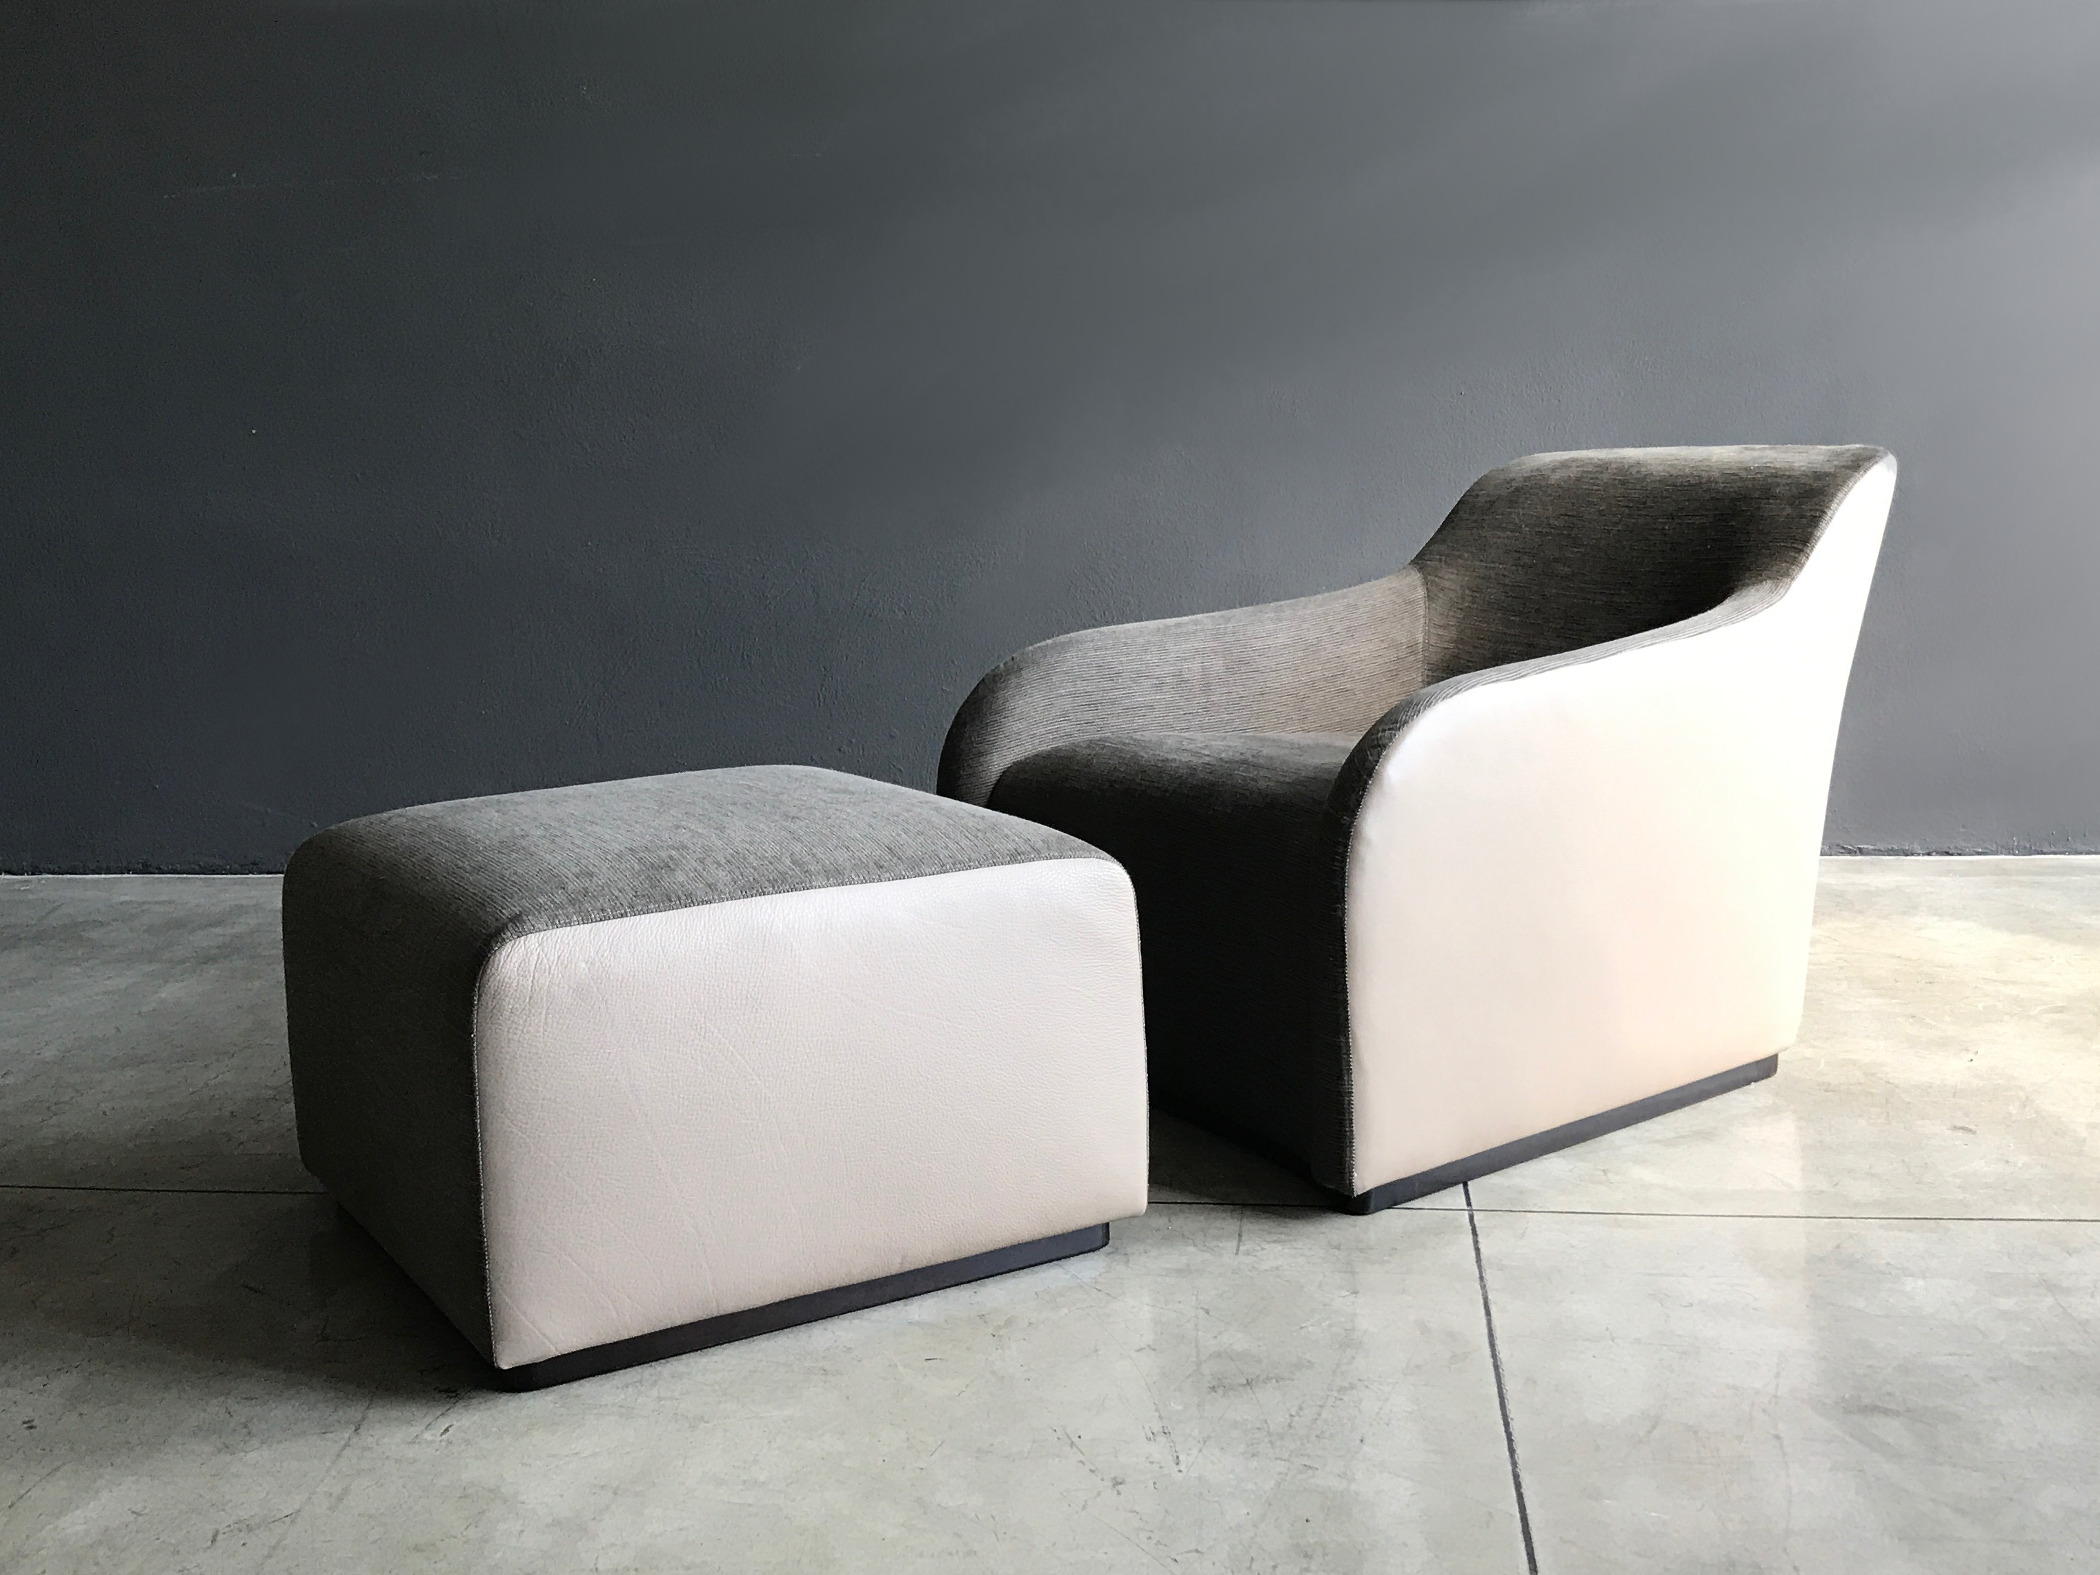 Low version design armchair leather fabric Ribot, Ribot low